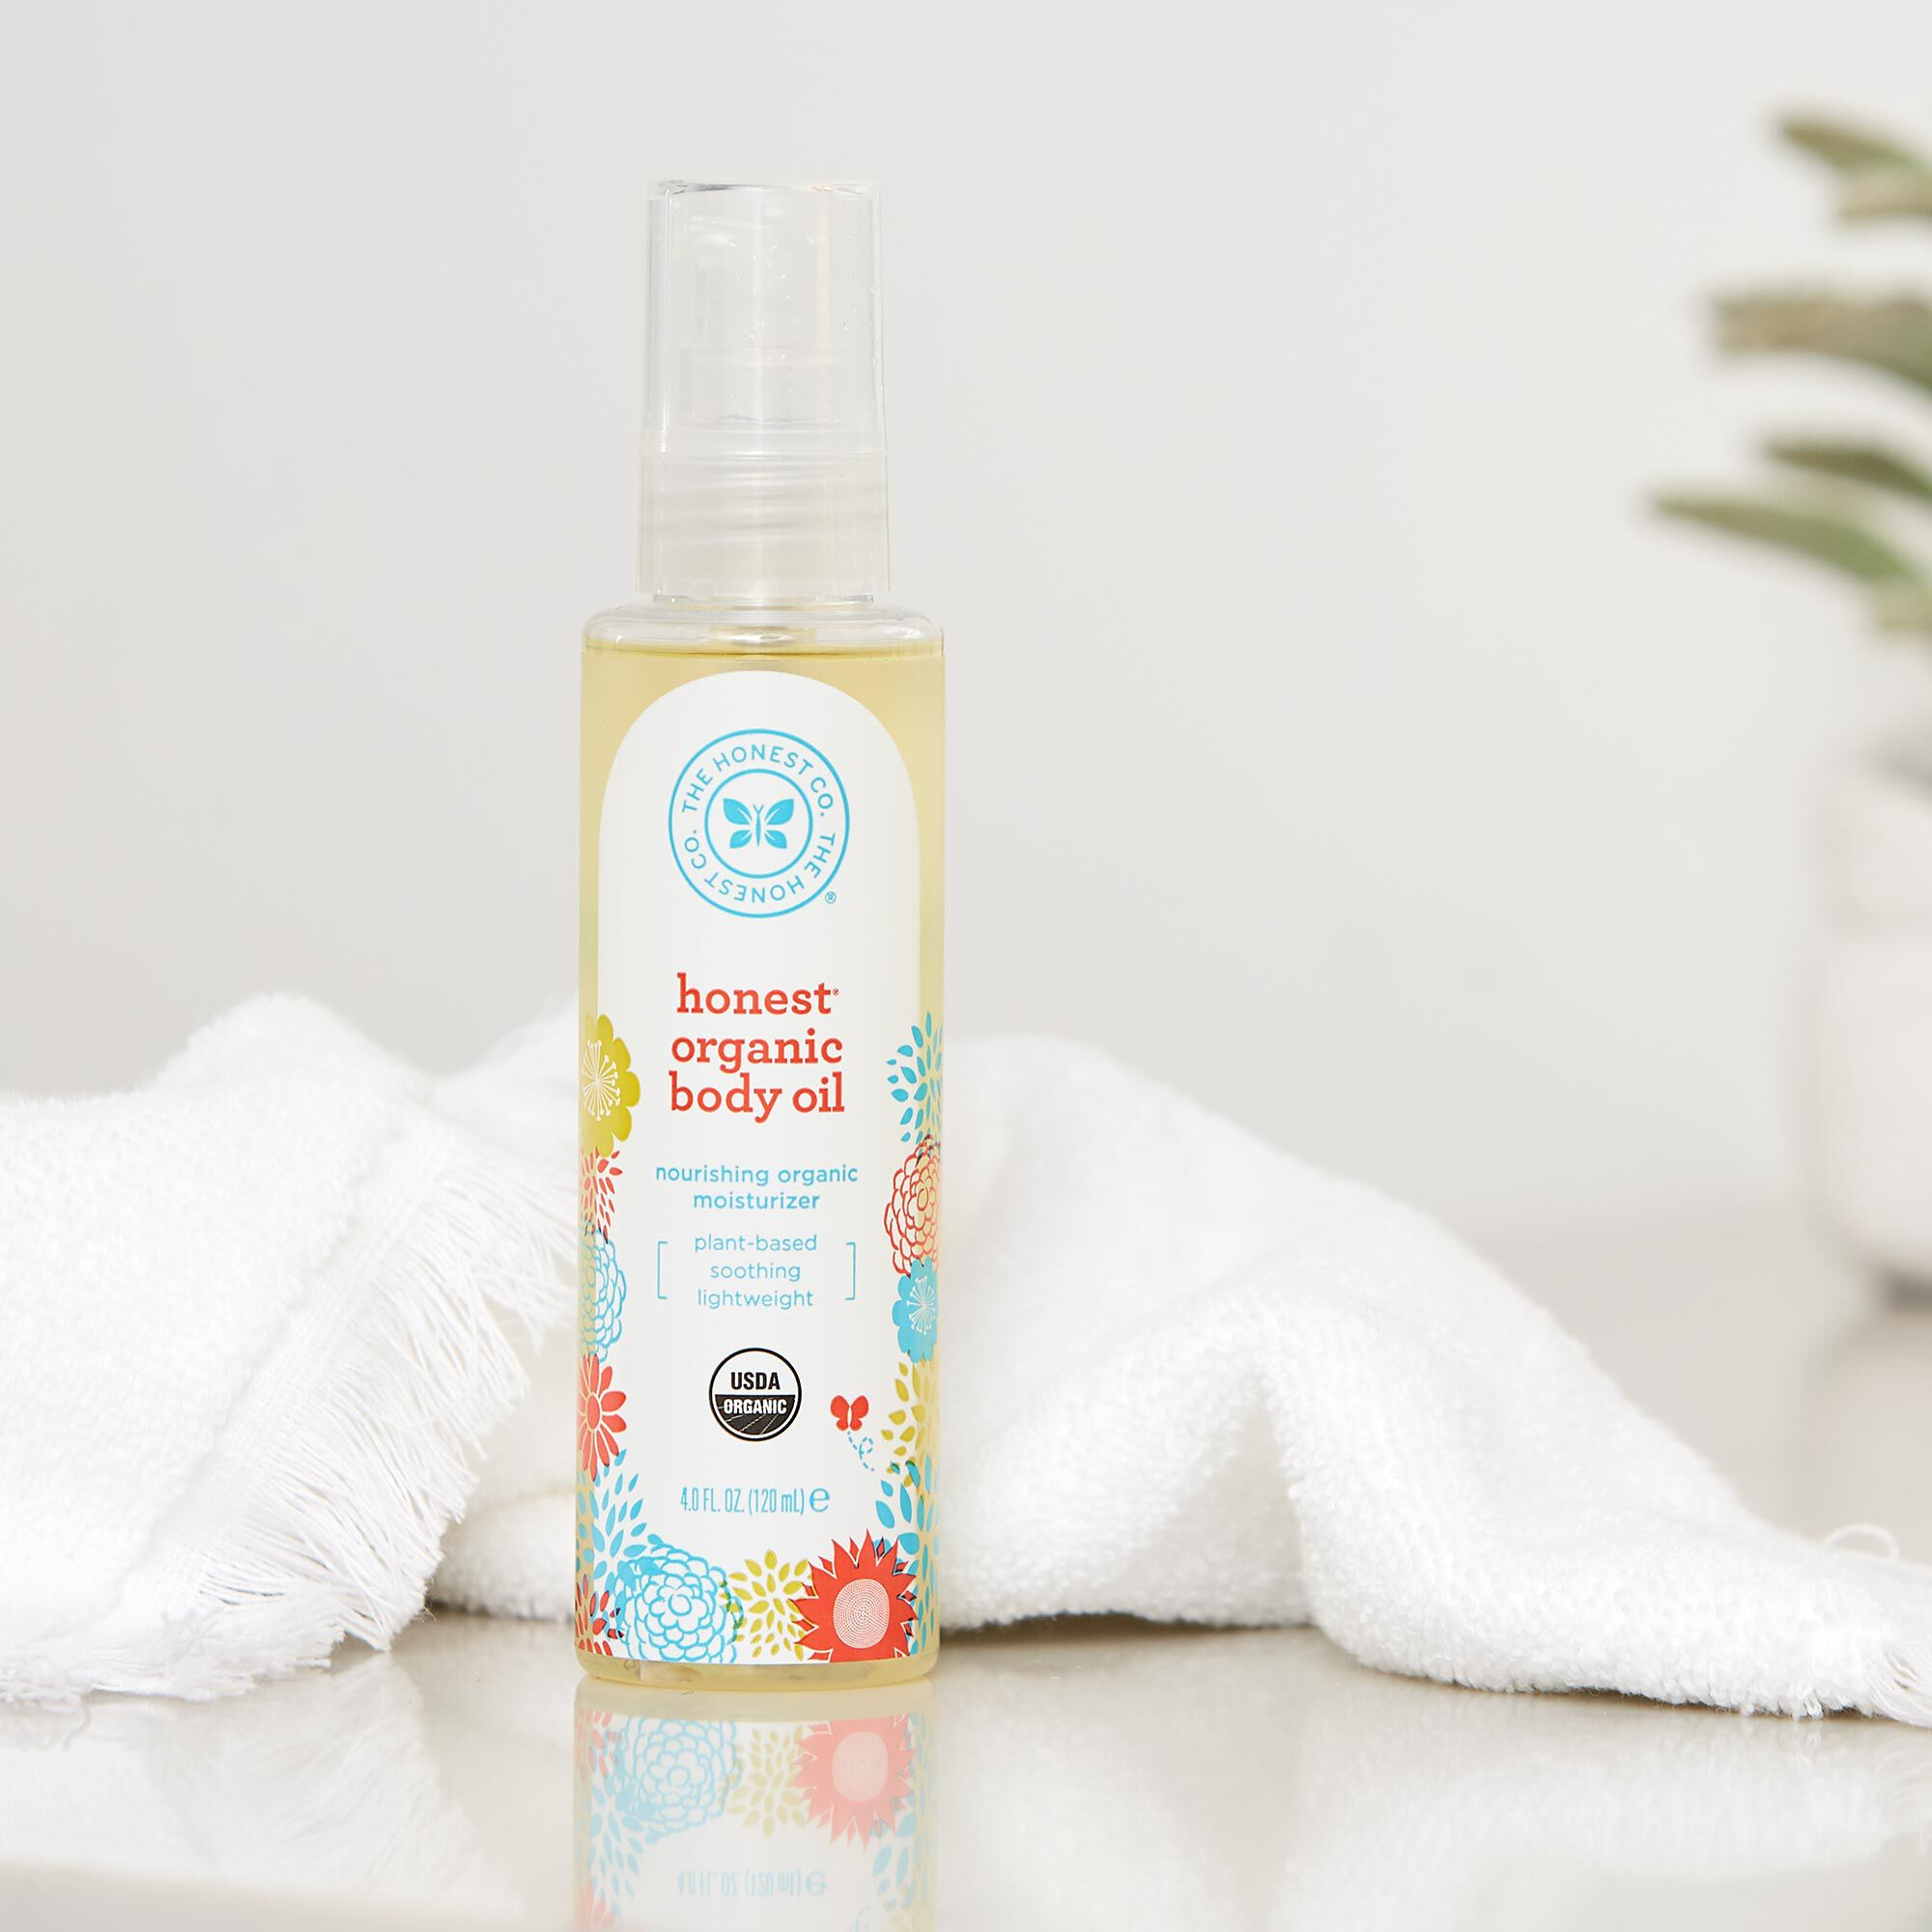 honest organic body oil in bath setting with towel